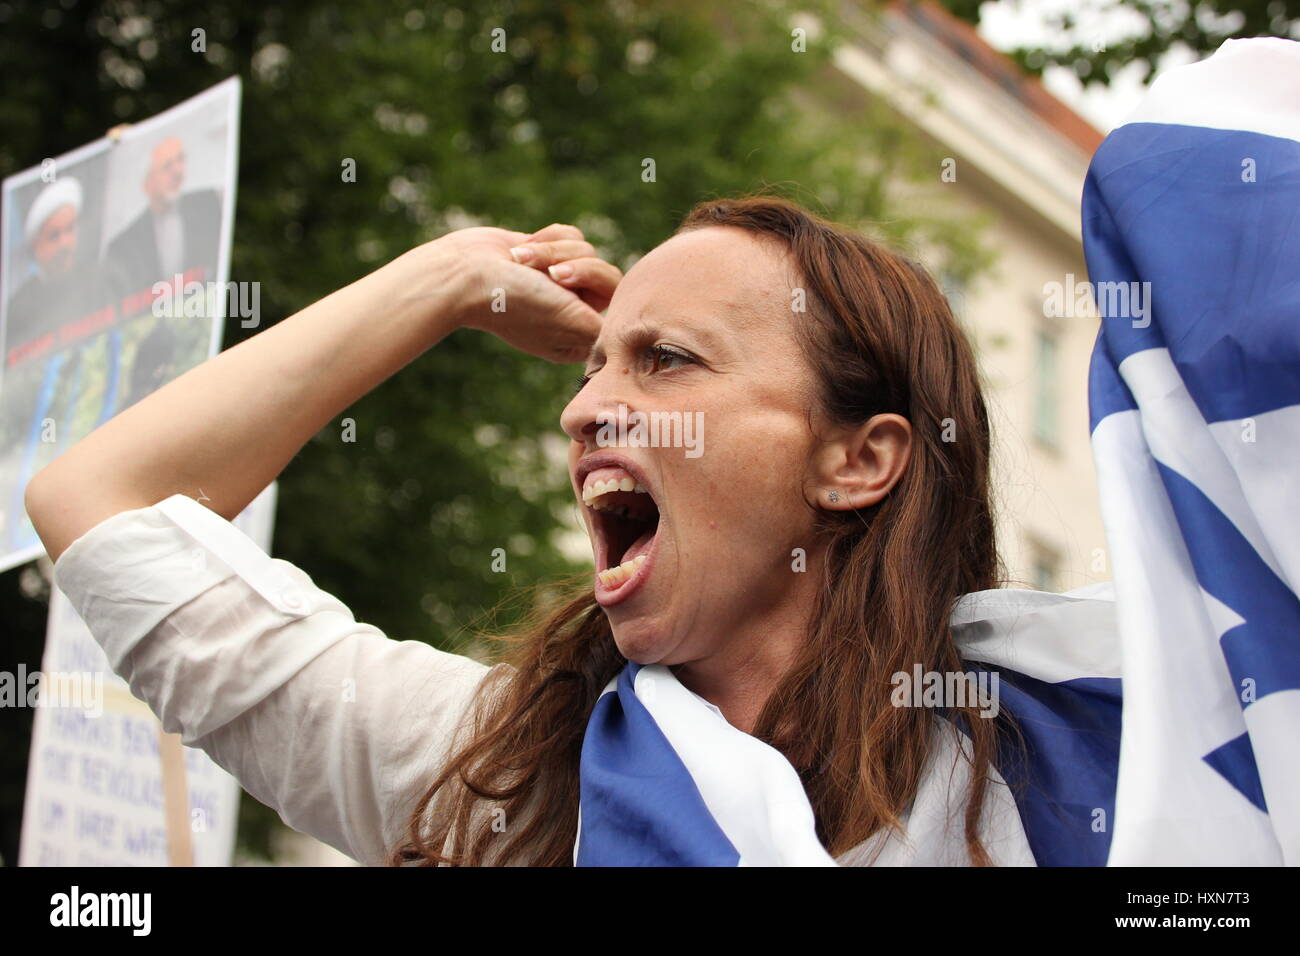 Berlin, Germany, July 25th, 2014: Al Quds day protest and anti-protest in Berlin. - Stock Image